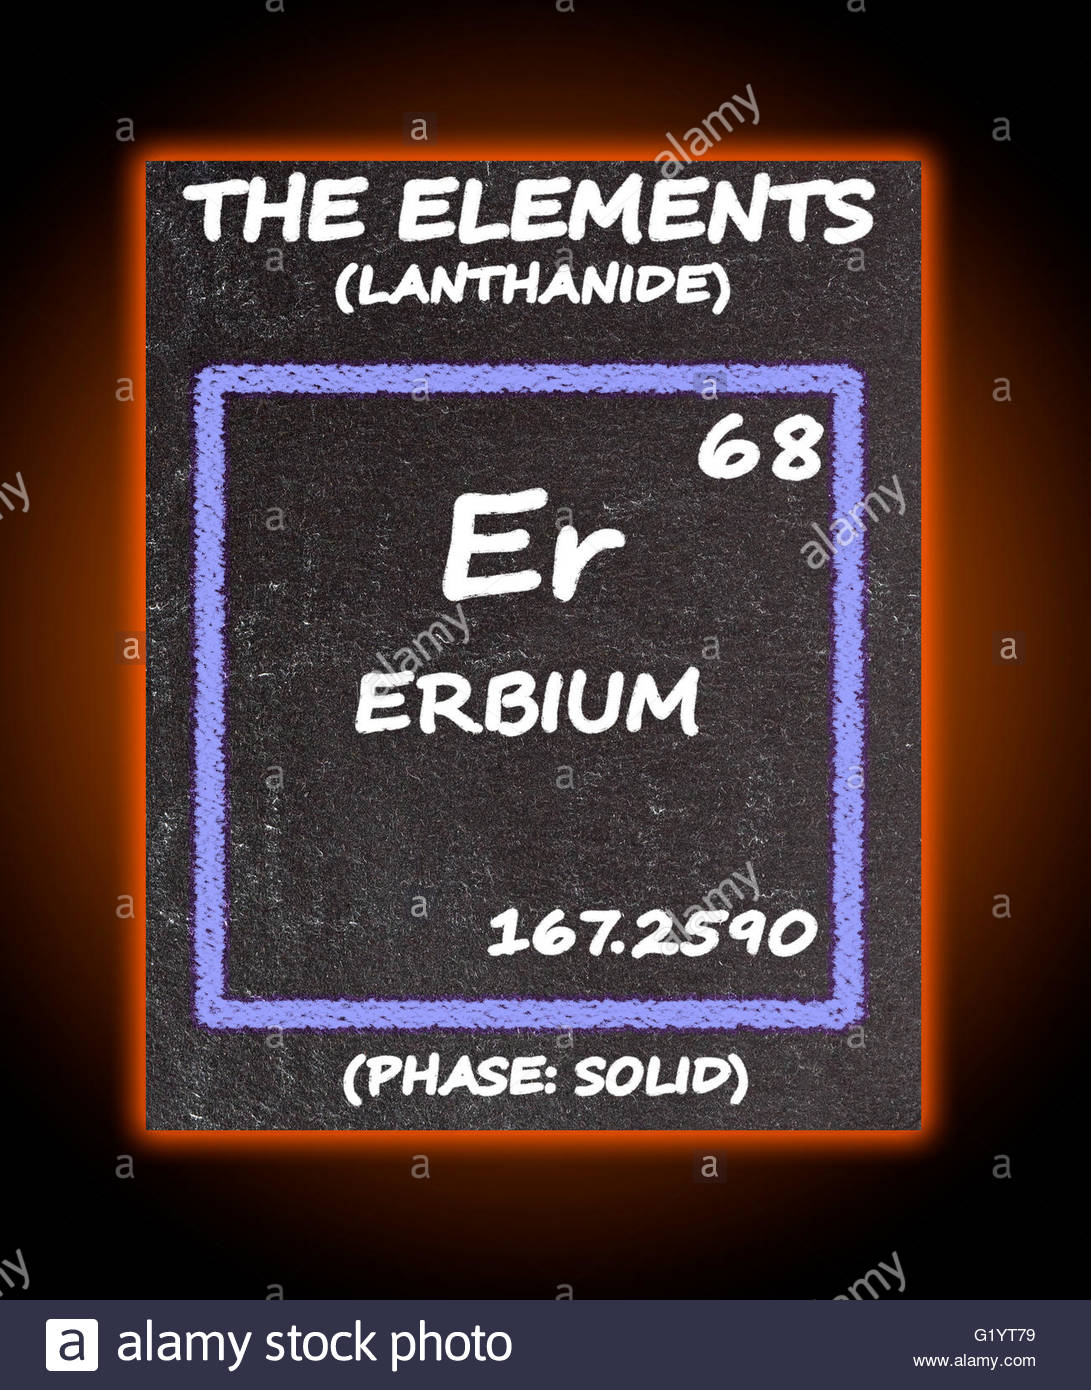 periodic table details maison design edfos erbium details from the periodic table stock photo periodic table - Periodic Table Yt